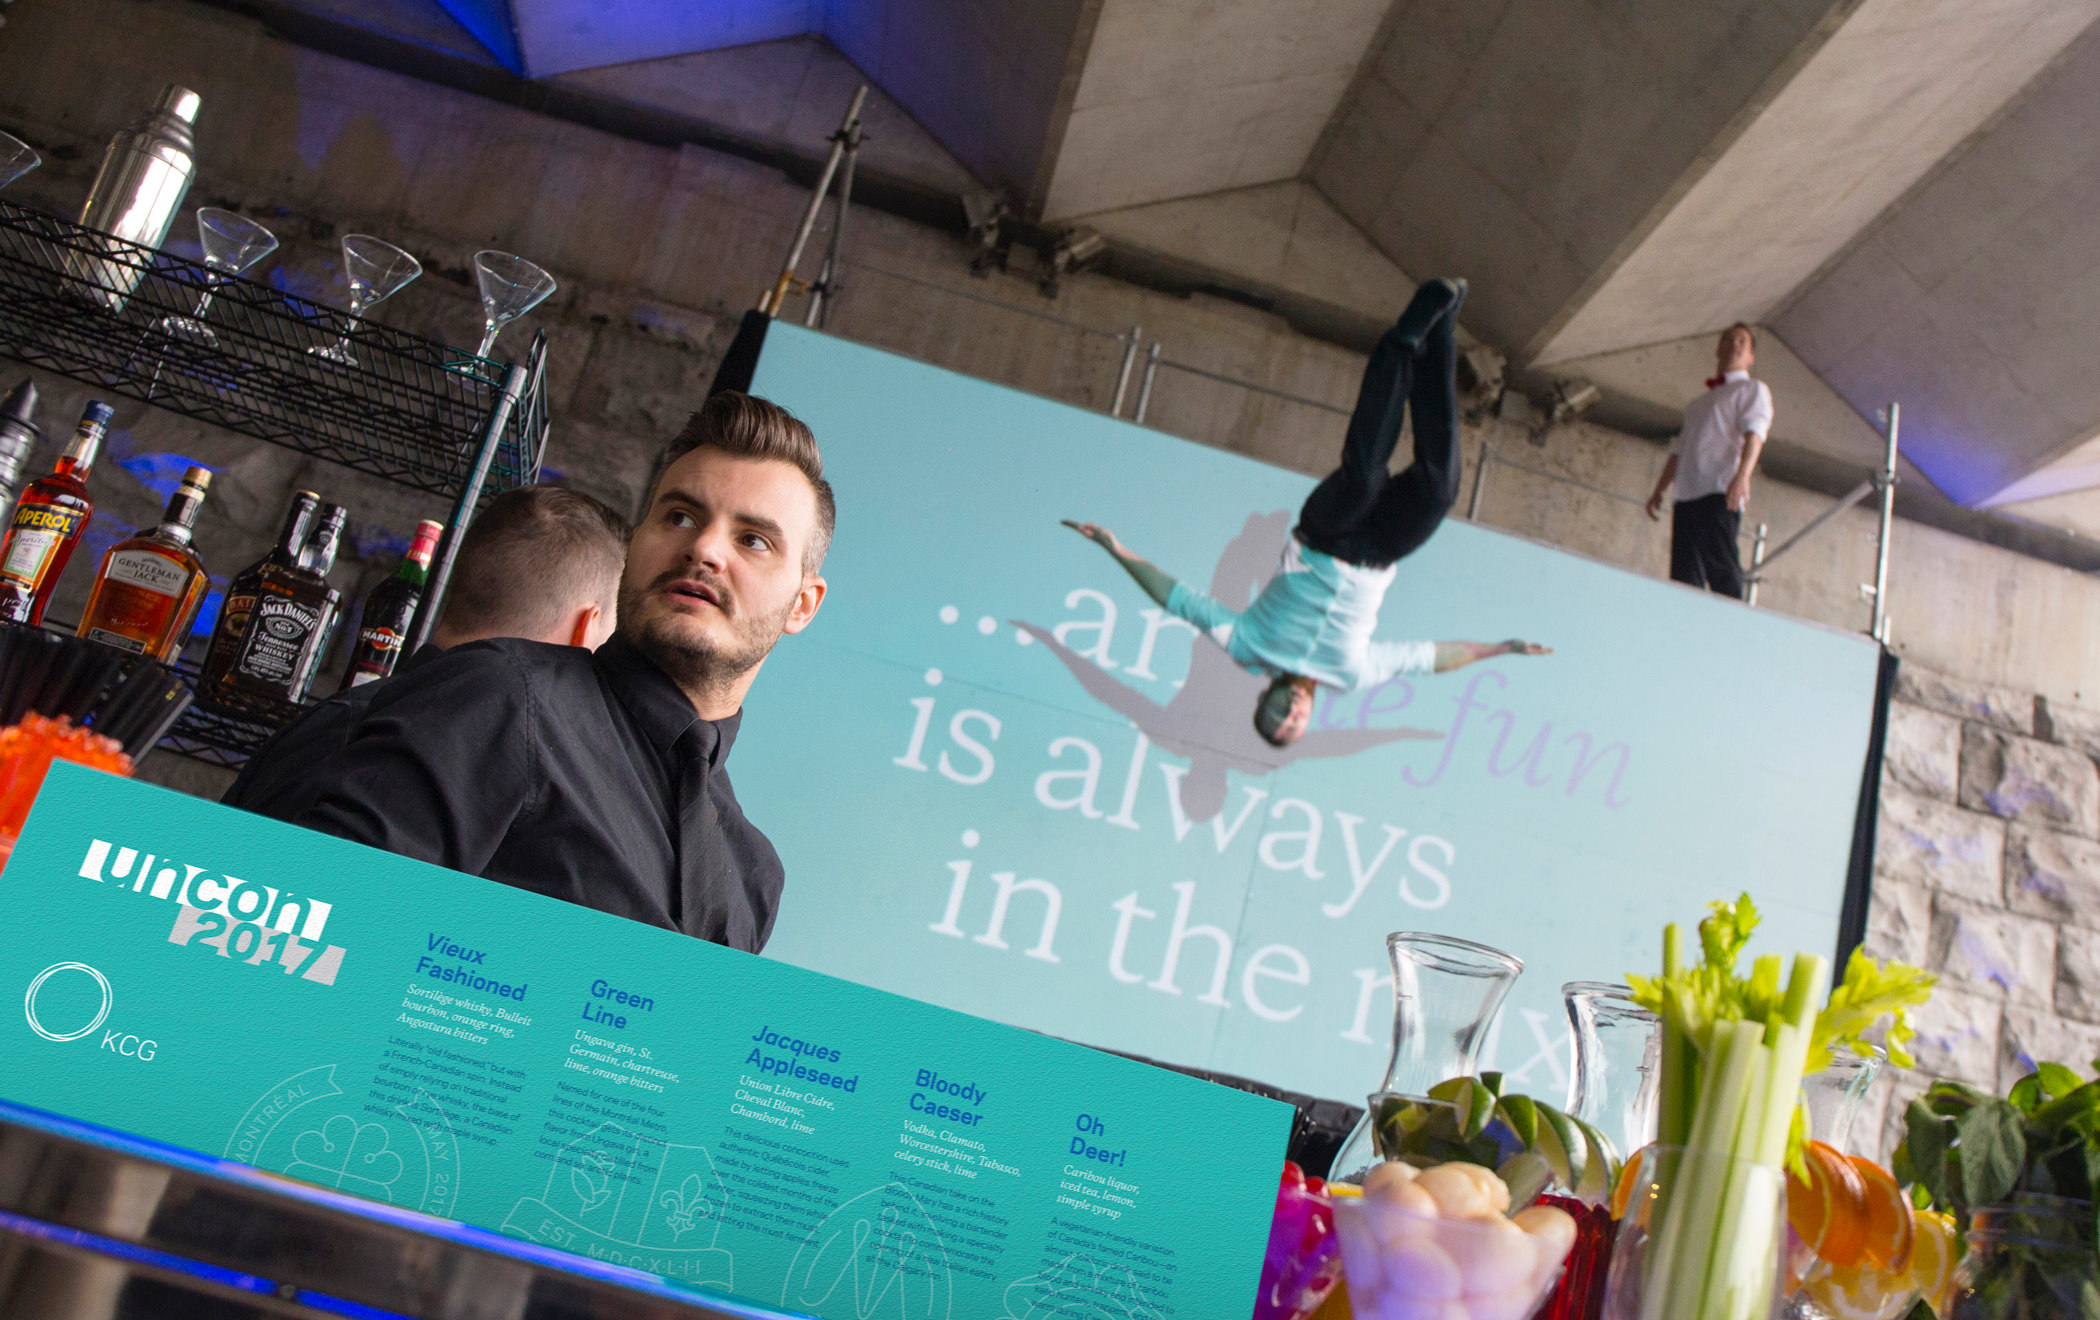 A bartender and cocktail menu sign at the 2017 KCG Uncon client event. A pair of acrobats perform in the background.